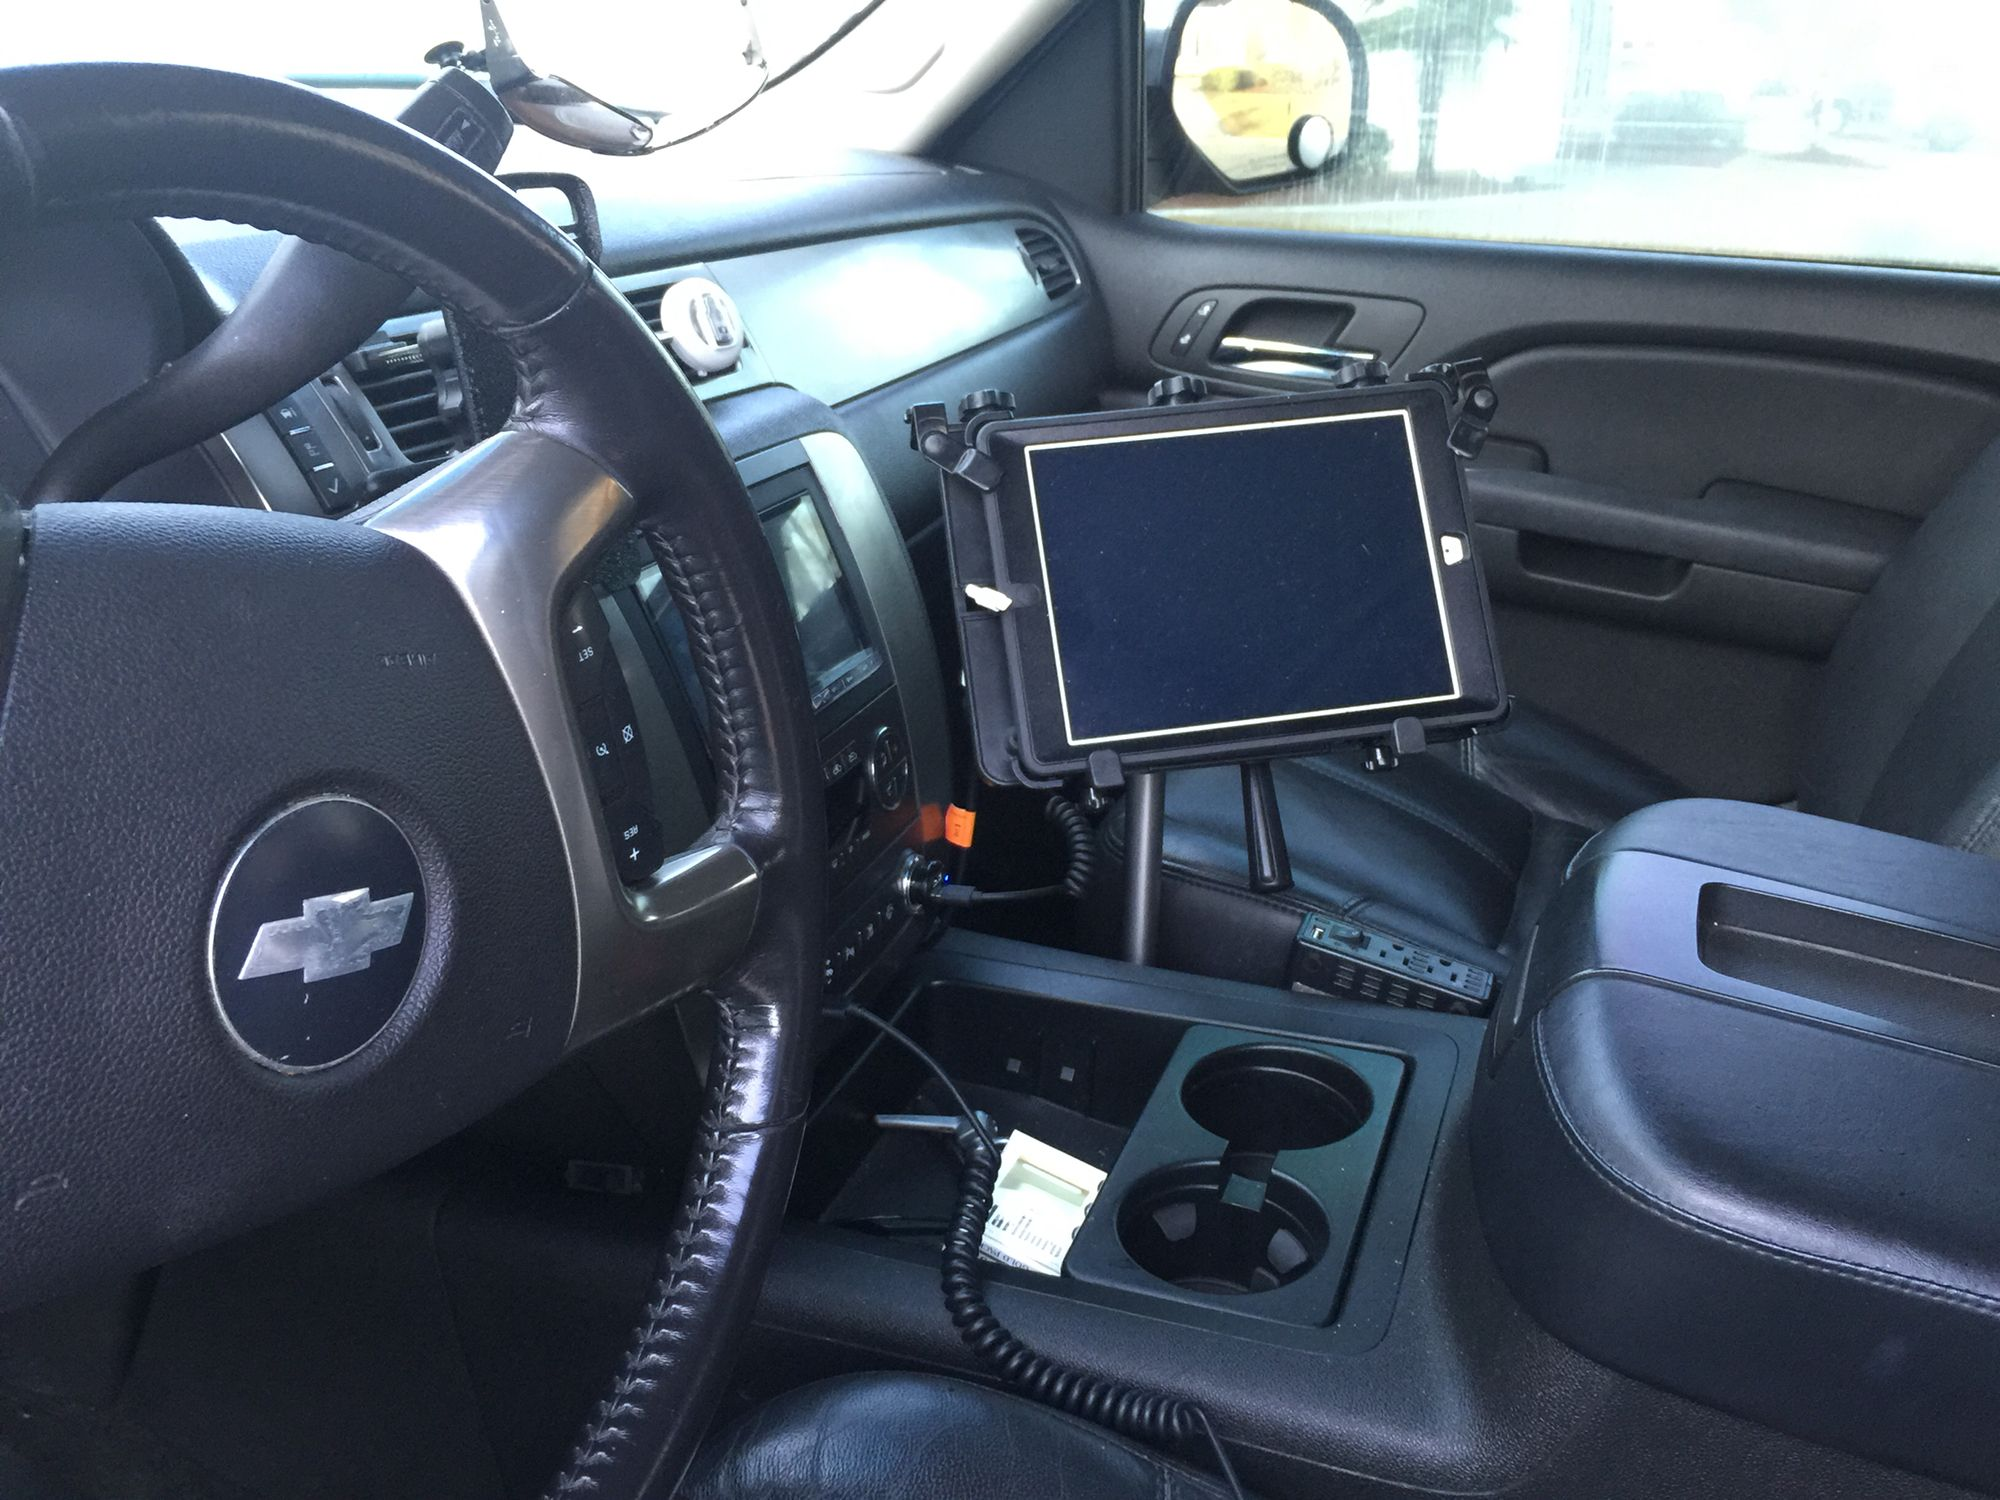 Ipad Mount Chevy Avalanche Chevy Avalanche Chevy Chevy Trucks